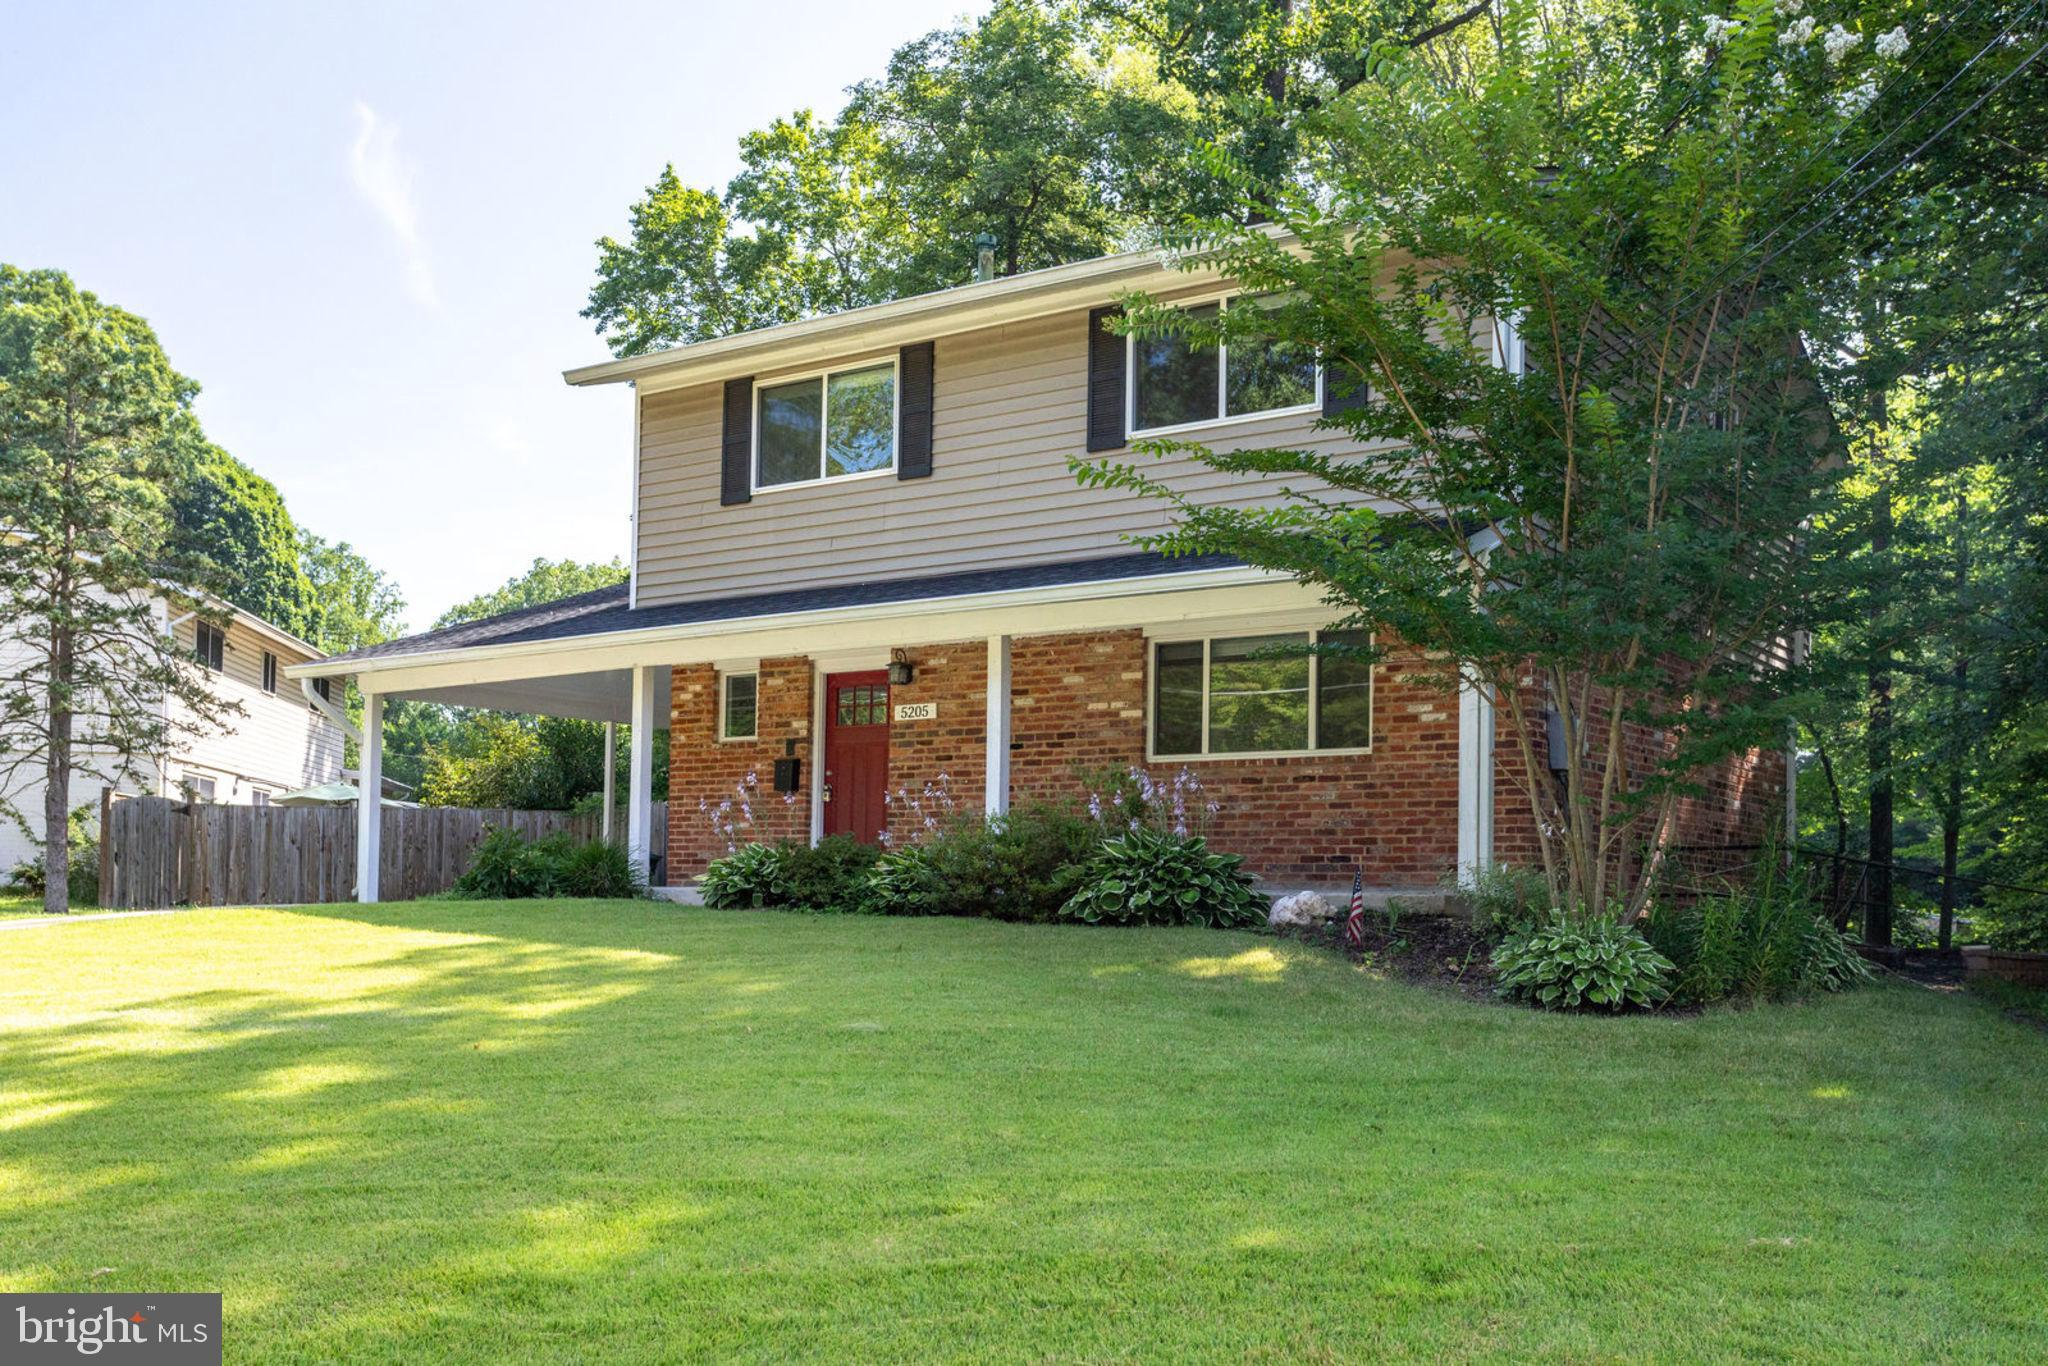 Don't miss this one! Move in ready, 4 bedroom, 3.5 bath home in sought after Kings Park. Remodeled bathrooms throughout including basement full bath and walk-in closet. Open kitchen with granite counter tops, large eat-in area, opening to a private deck and patio. Re-finished floors on main level. Great Schools, Lake Braddock pyramid. Excellent location, near 495, VRE, Pentagon Direct Metro Bus. Agent is owner.